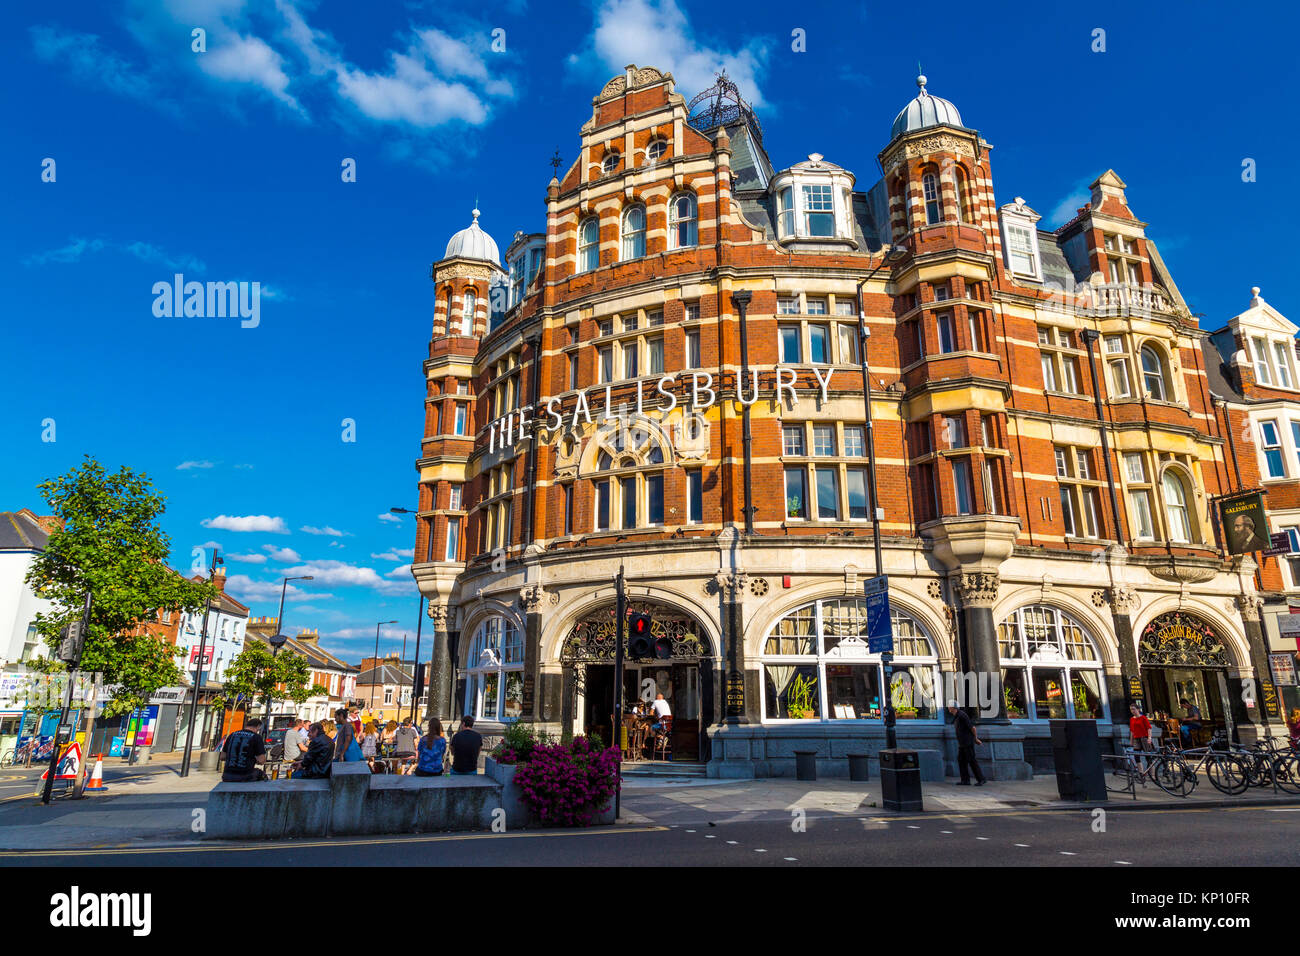 The Salisbury Hotel, London, UK - Stock Image